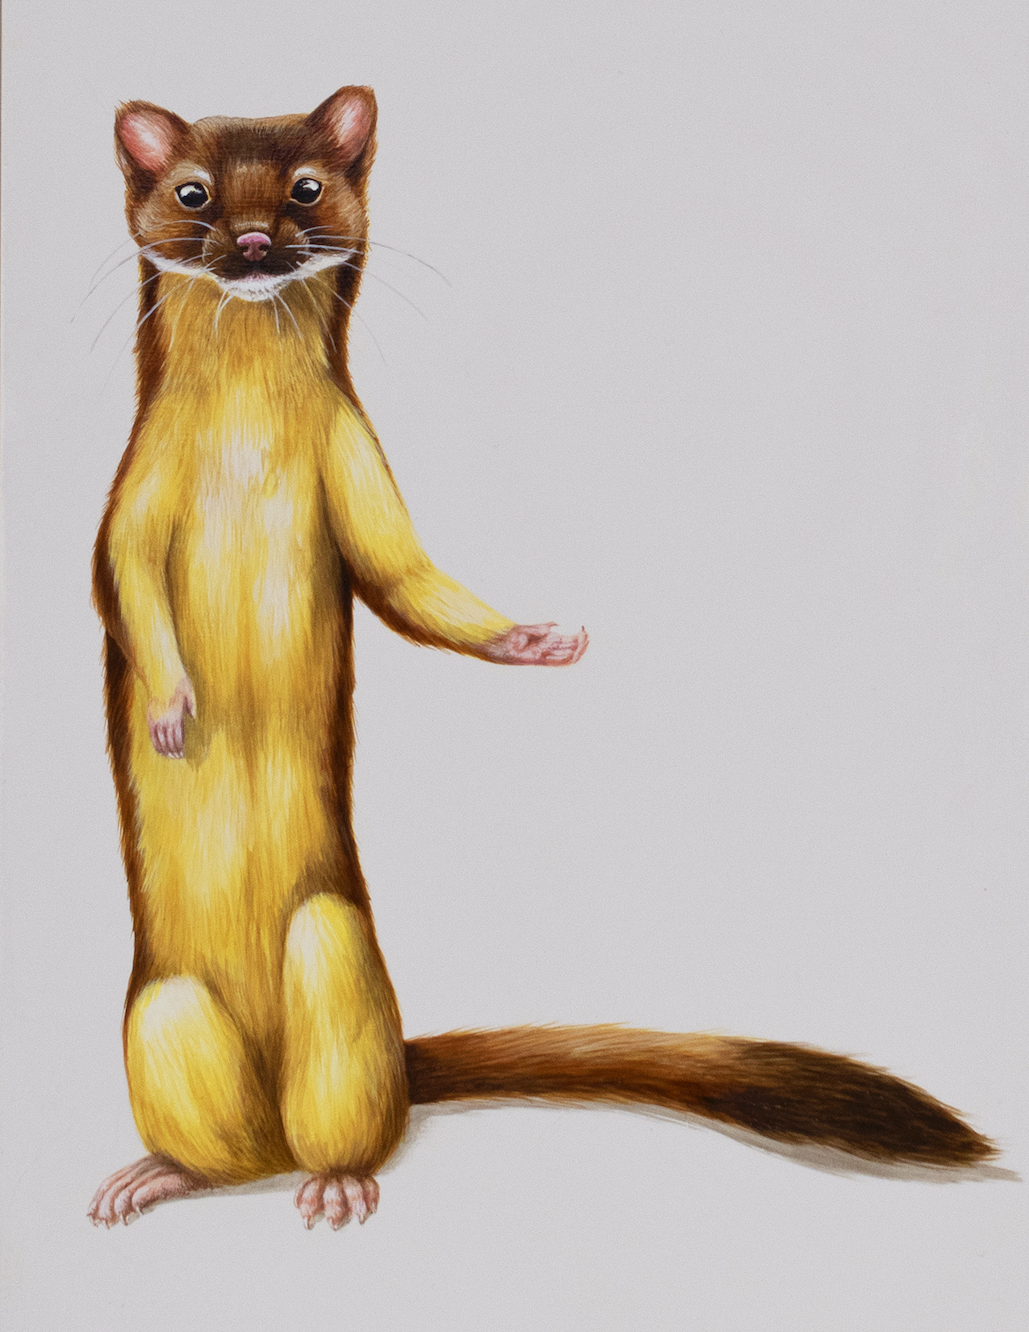 Tricia George: The Long-Tailed Weasel